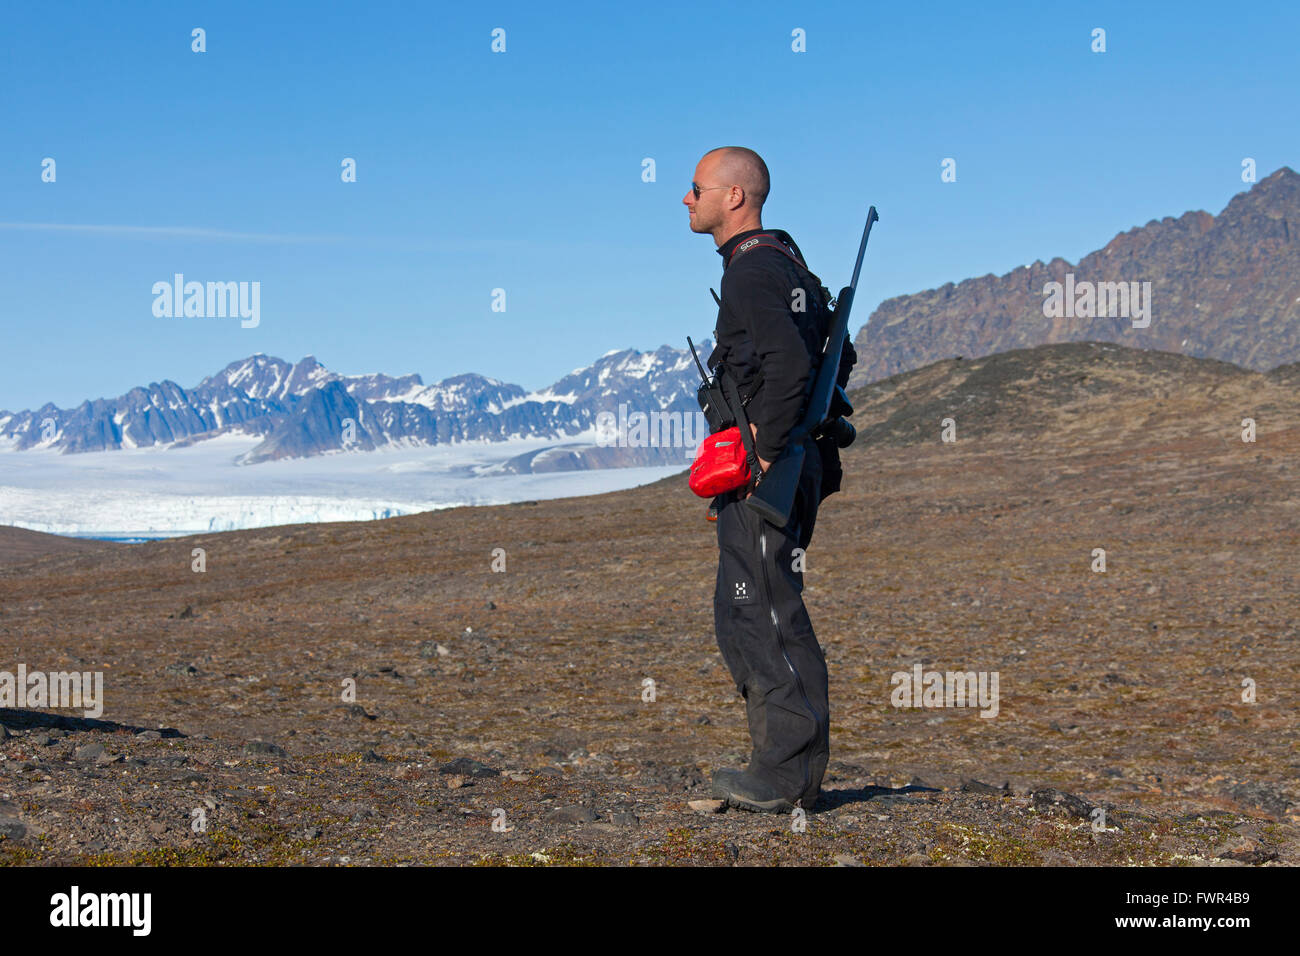 Polar bear guard armed with rifle on the lookout for polar bears, Svalbard, Norway - Stock Image